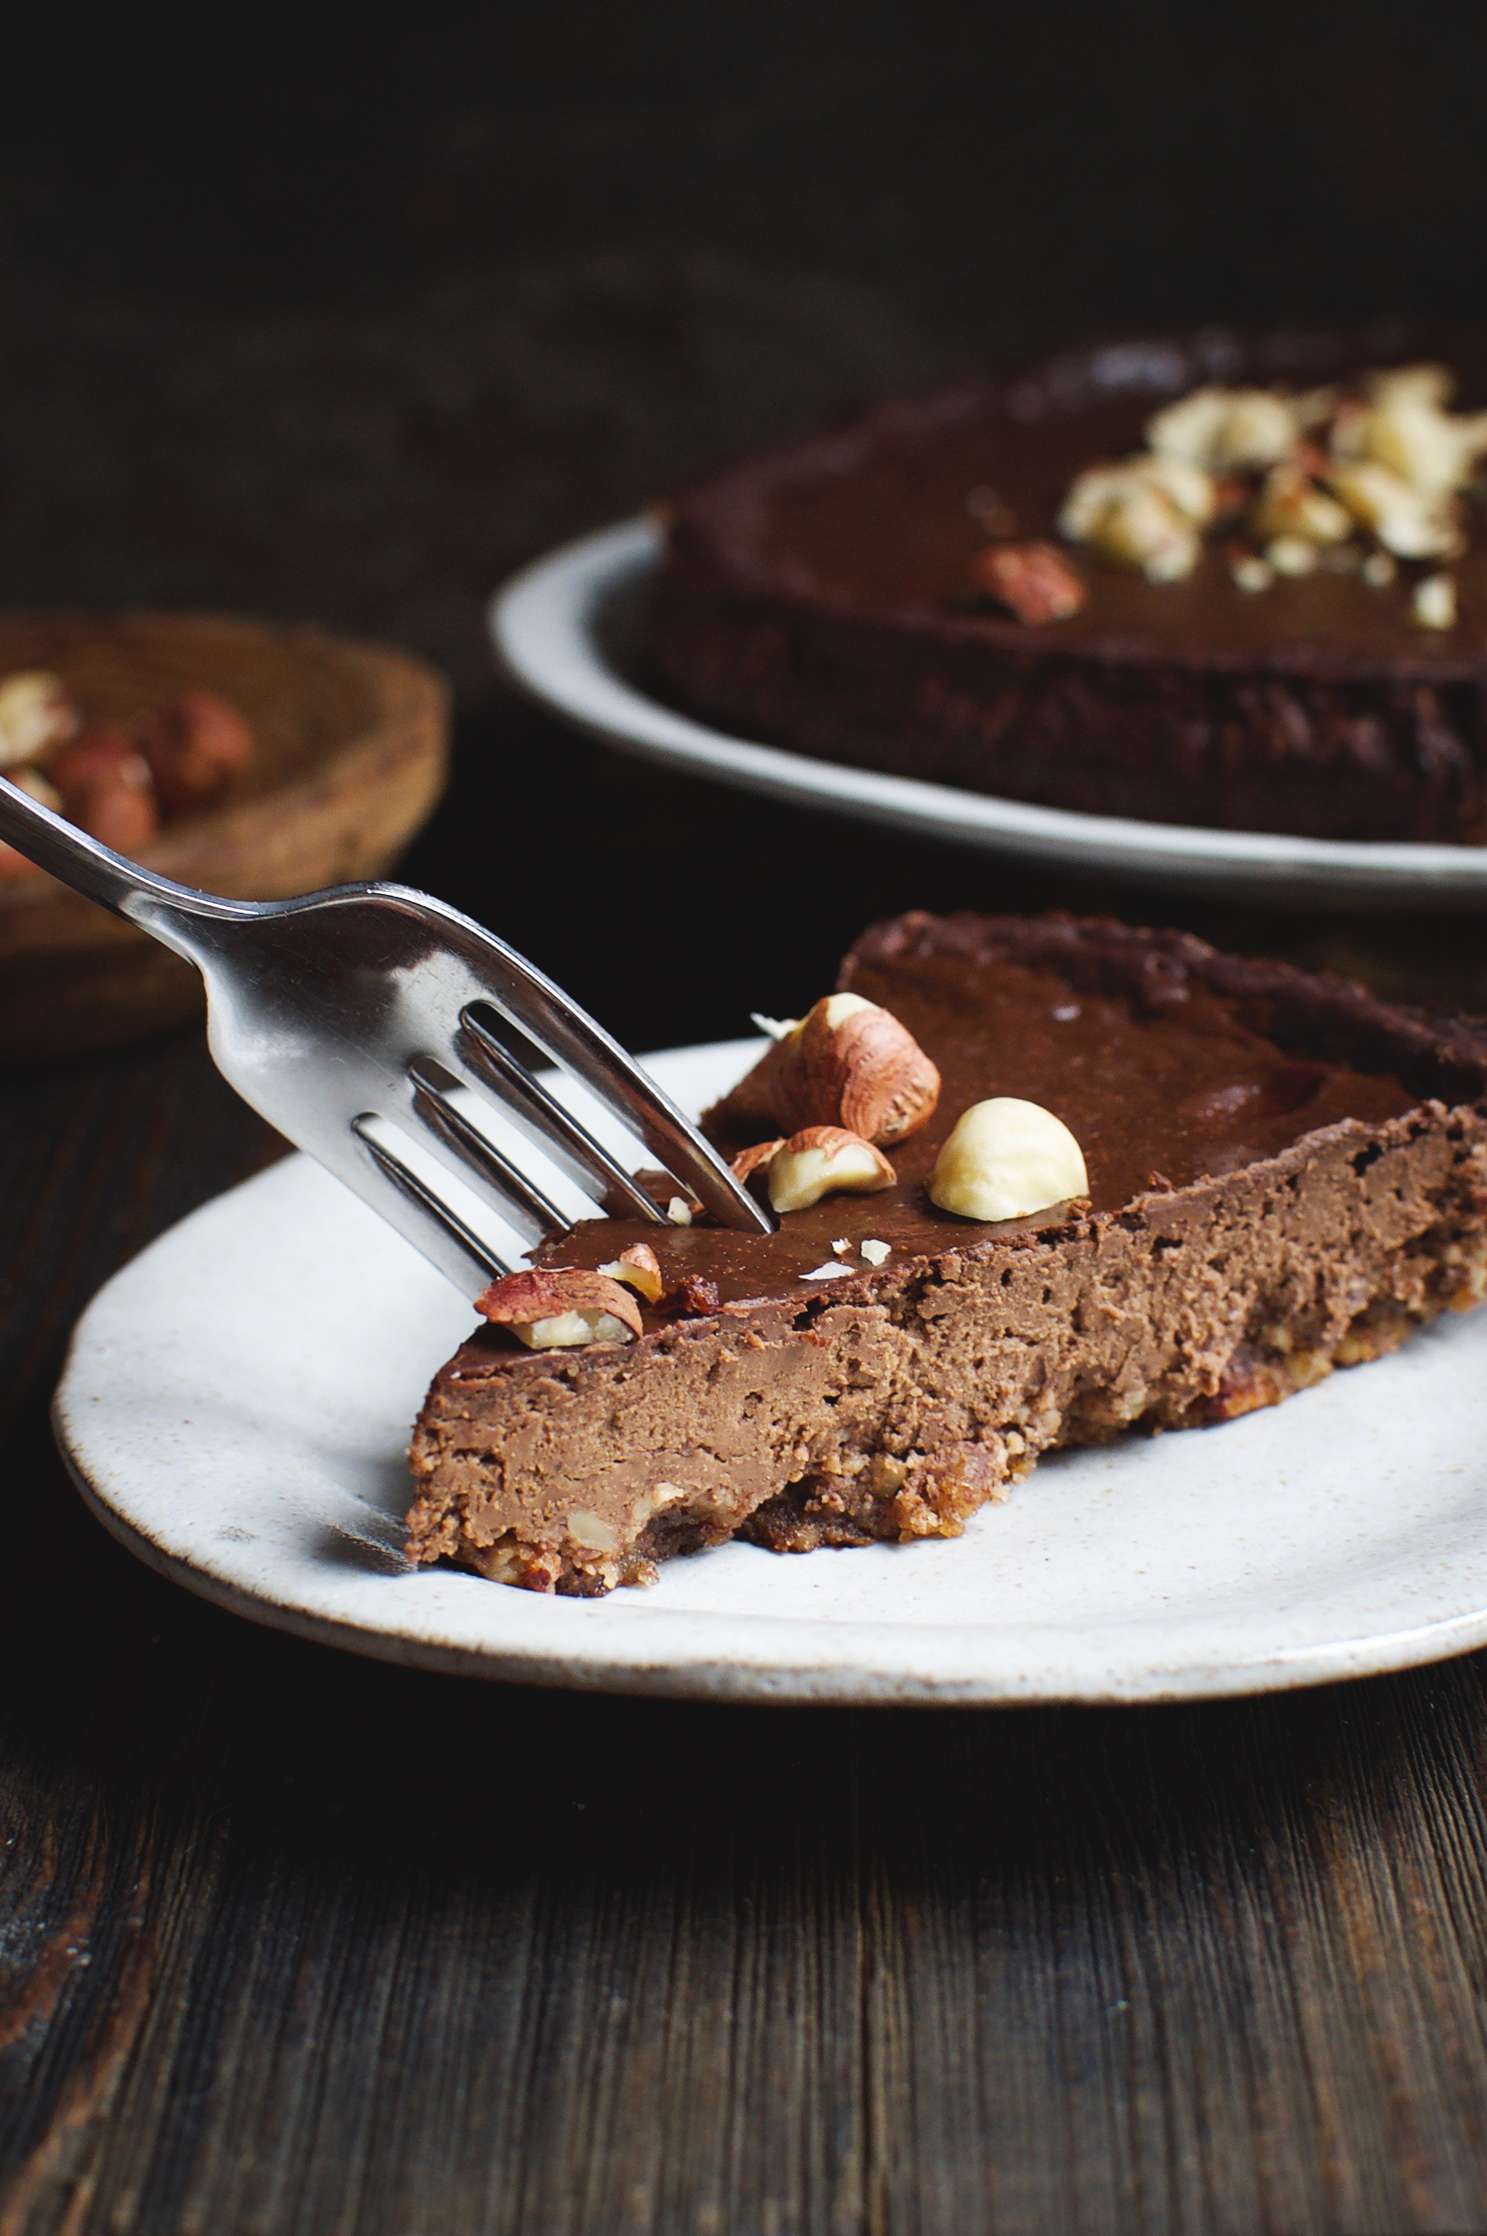 Low-Carb Chocolate Hazelnut Fudge Pie on a dessert plate.